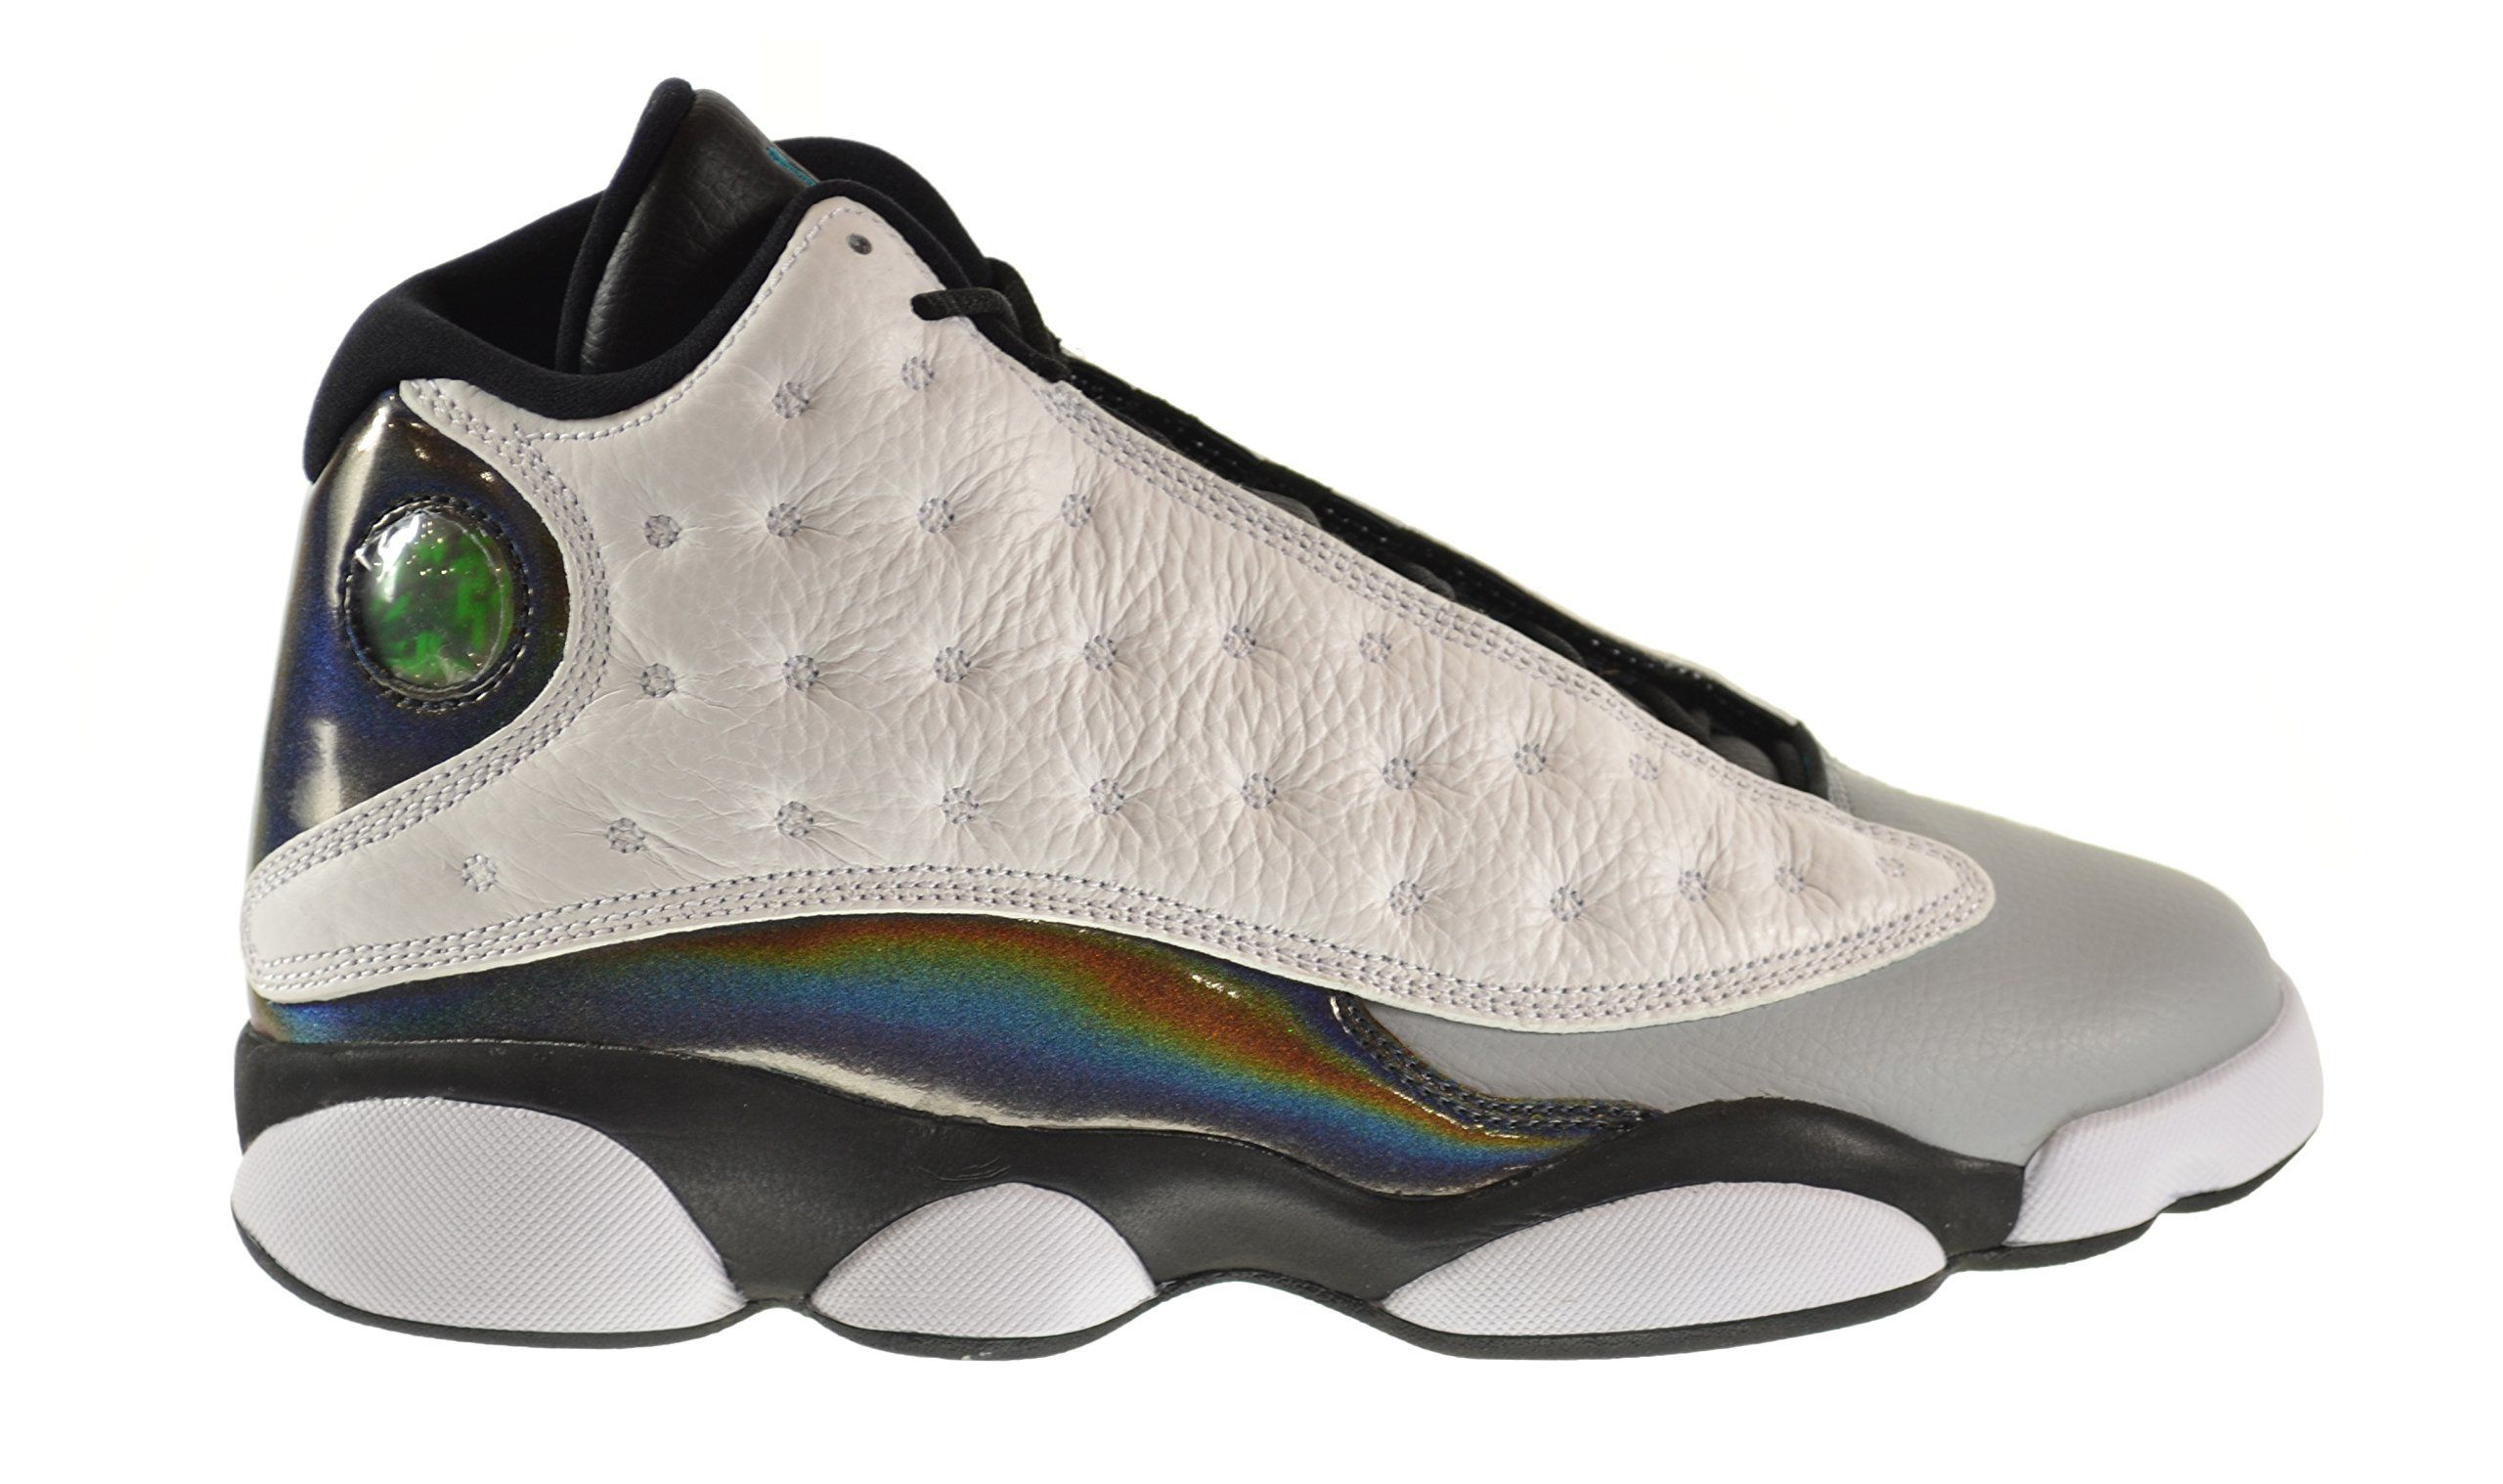 9bafae0e1c7d0 Amazon.com: Air Jordan 13 Retro